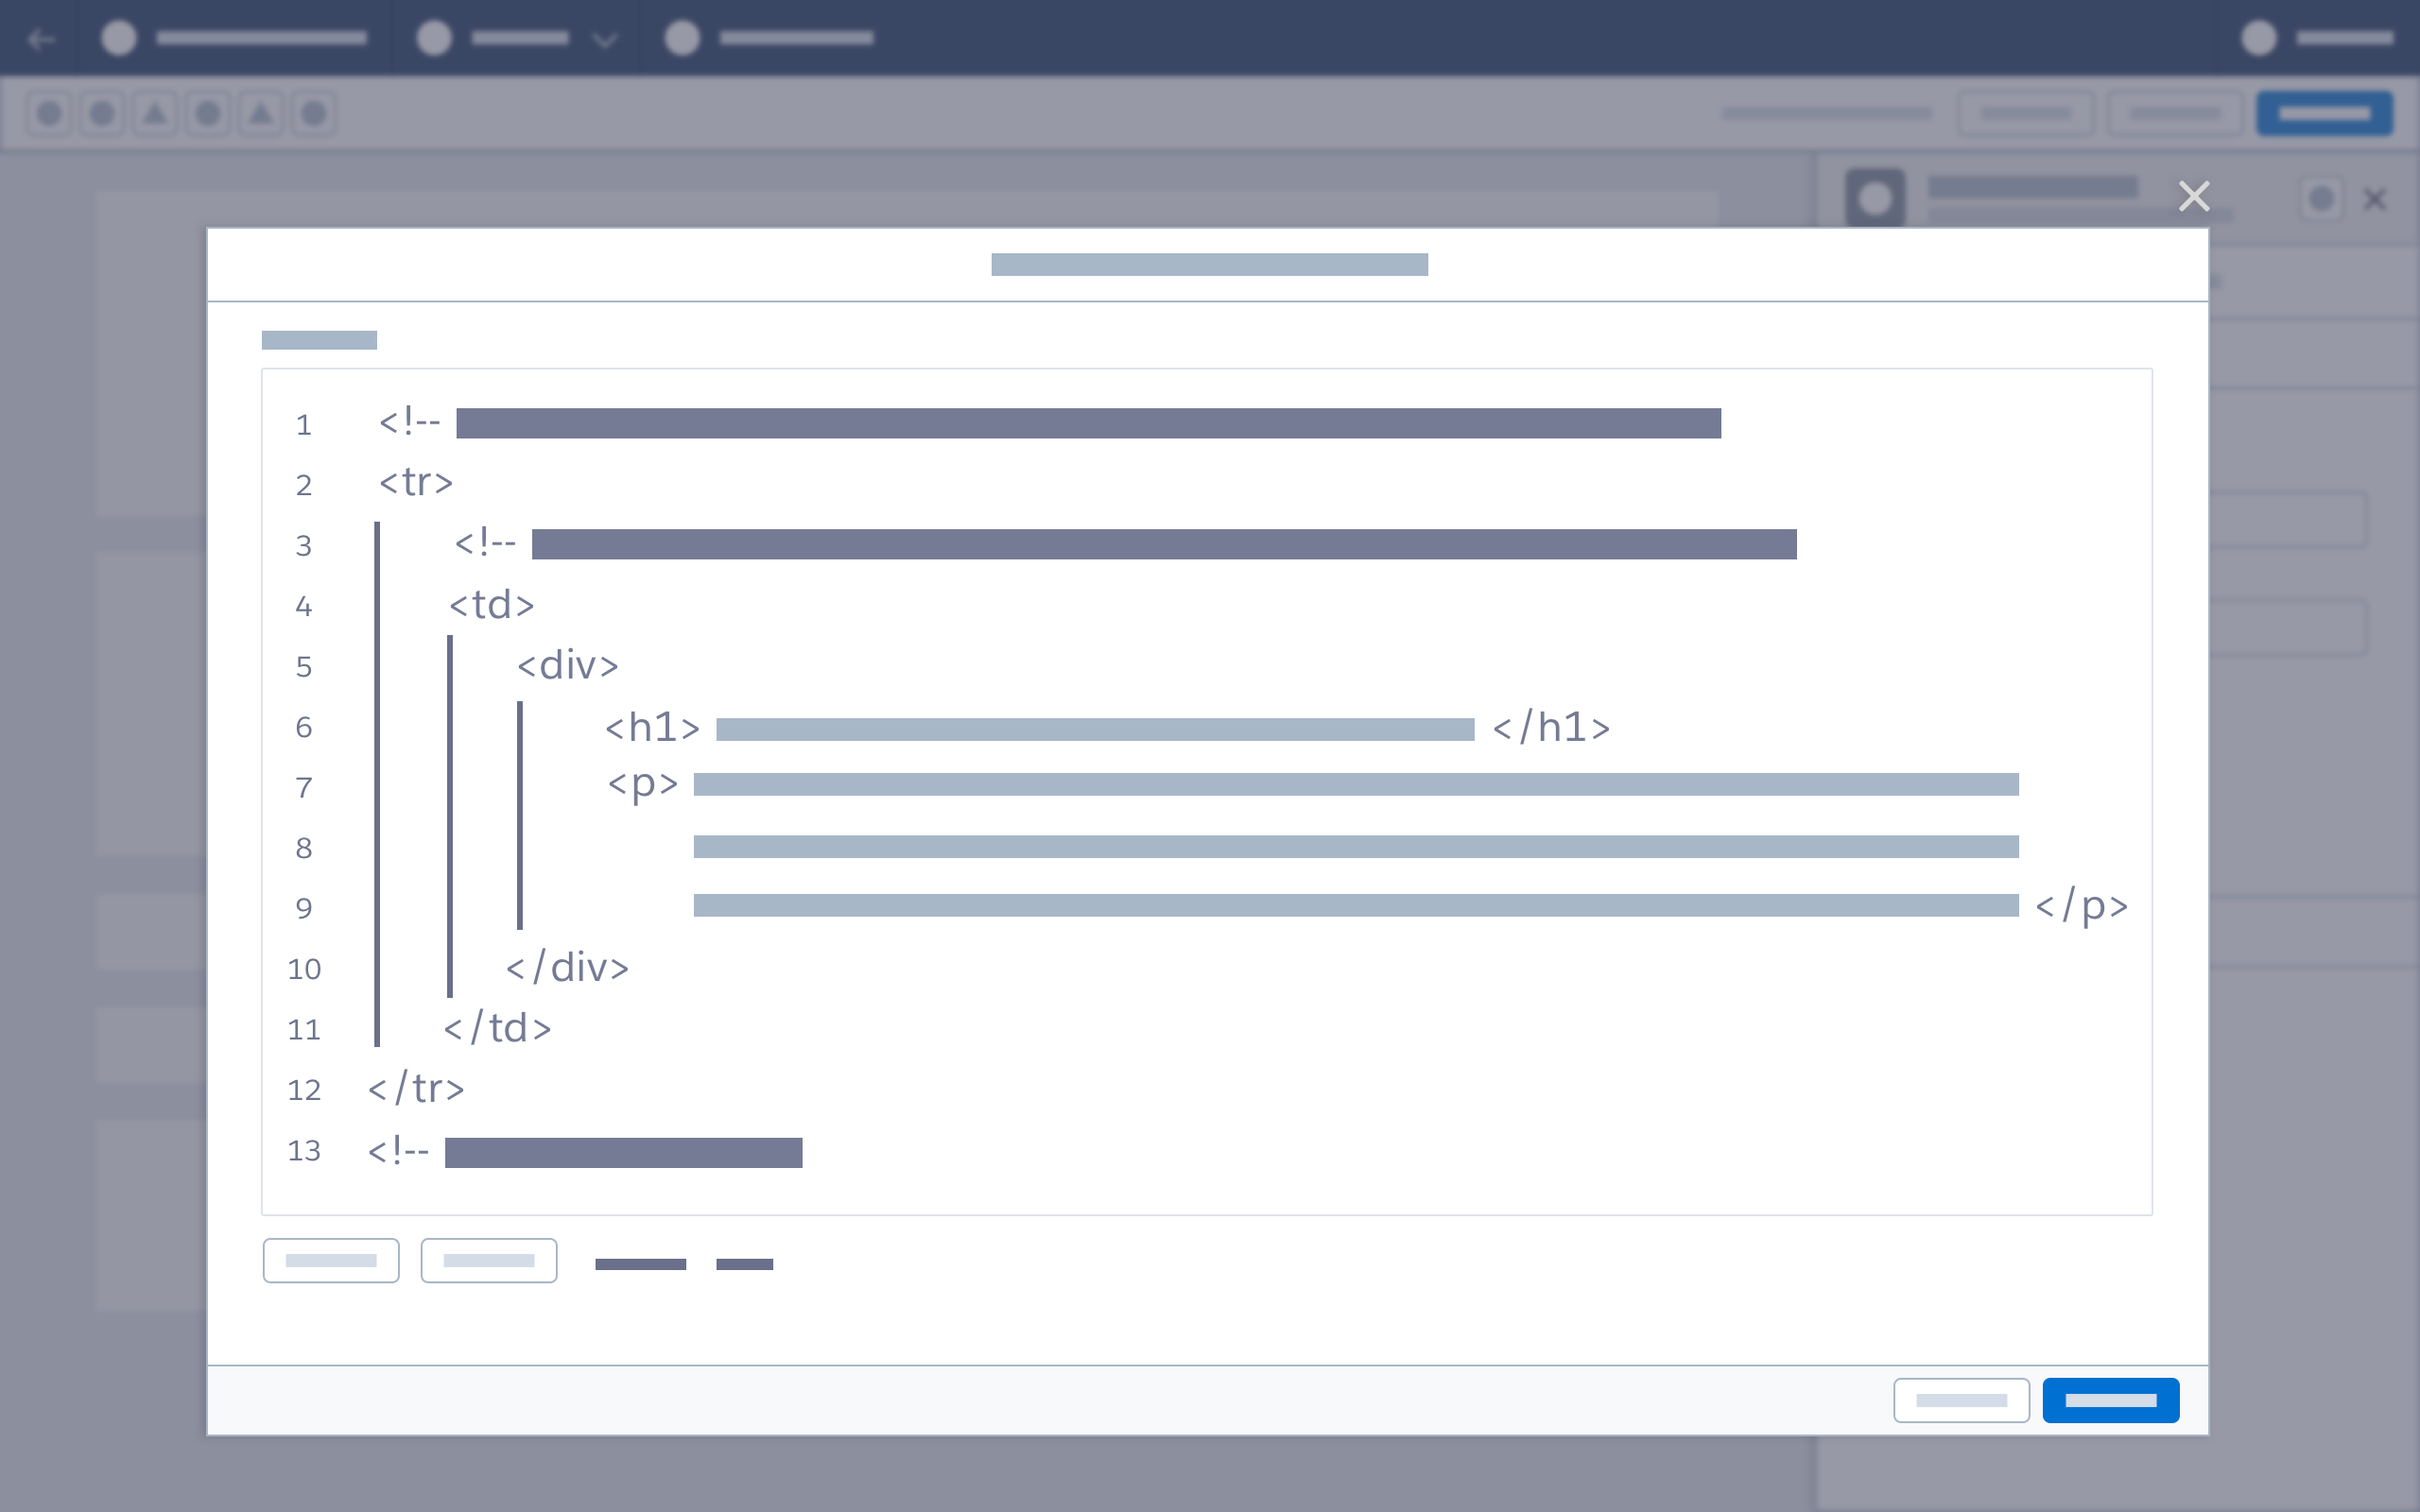 Wireframe showing an expanded view of HTML code in a modal